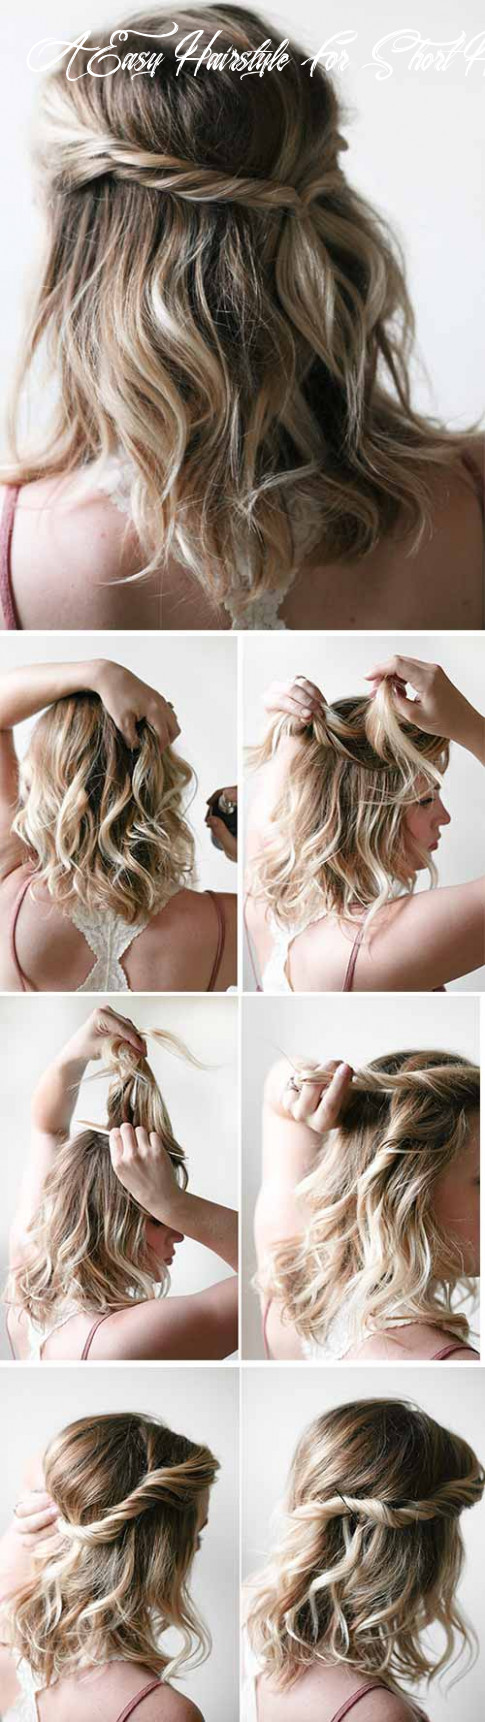 12 incredible diy short hairstyles a step by step guide a easy hairstyle for short hair